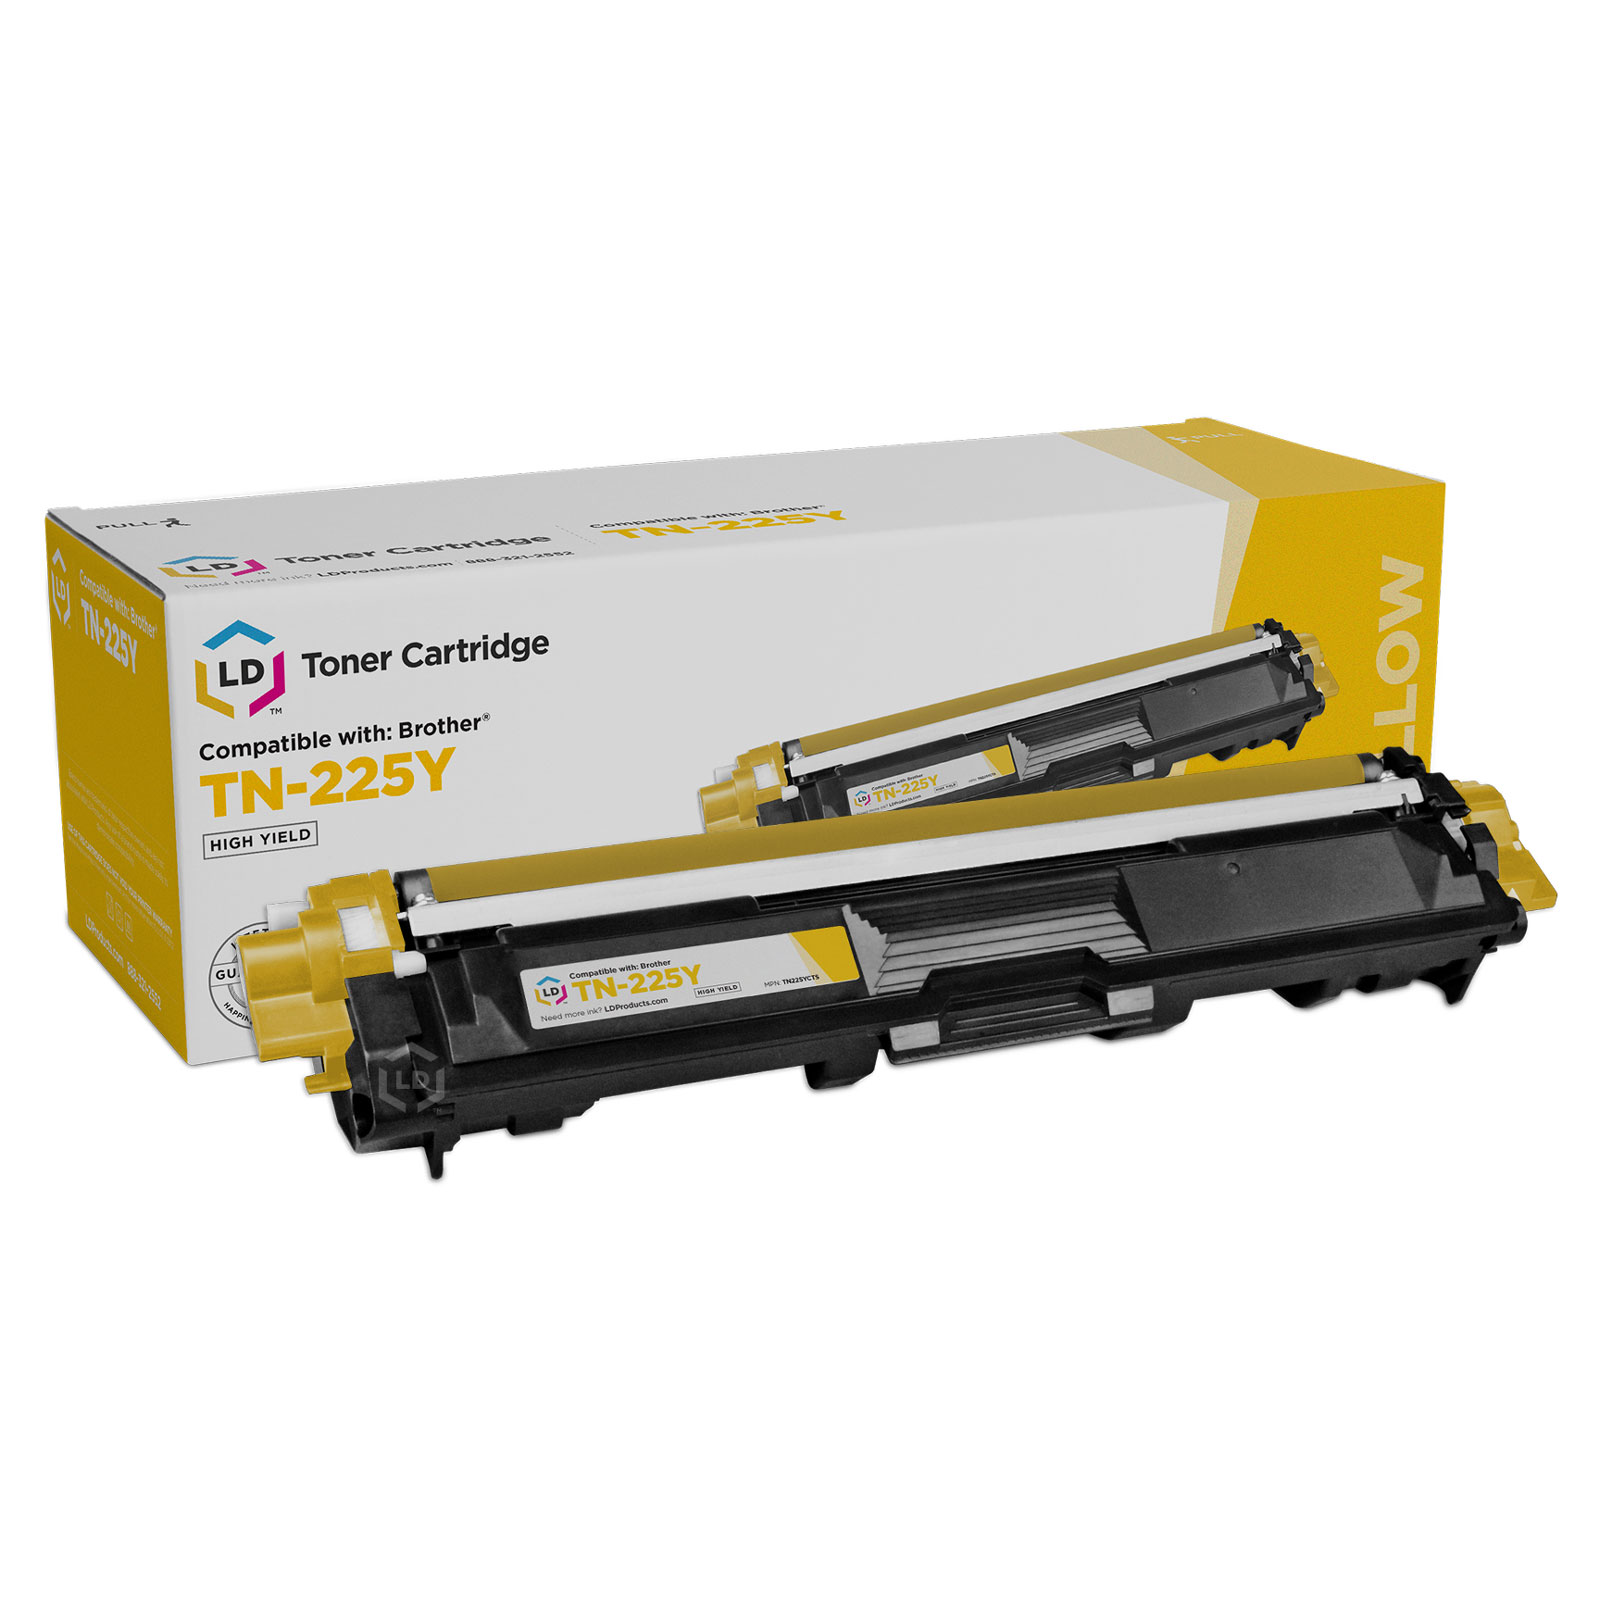 LD © Compatible Replacement for Brother TN225Y High Yield Yellow Laser Toner Cartridge for use in Brother HL-3140CW, HL-3170CDW, MFC-9130CW, MFC-9330CDW, and MFC-9340CDW Printers